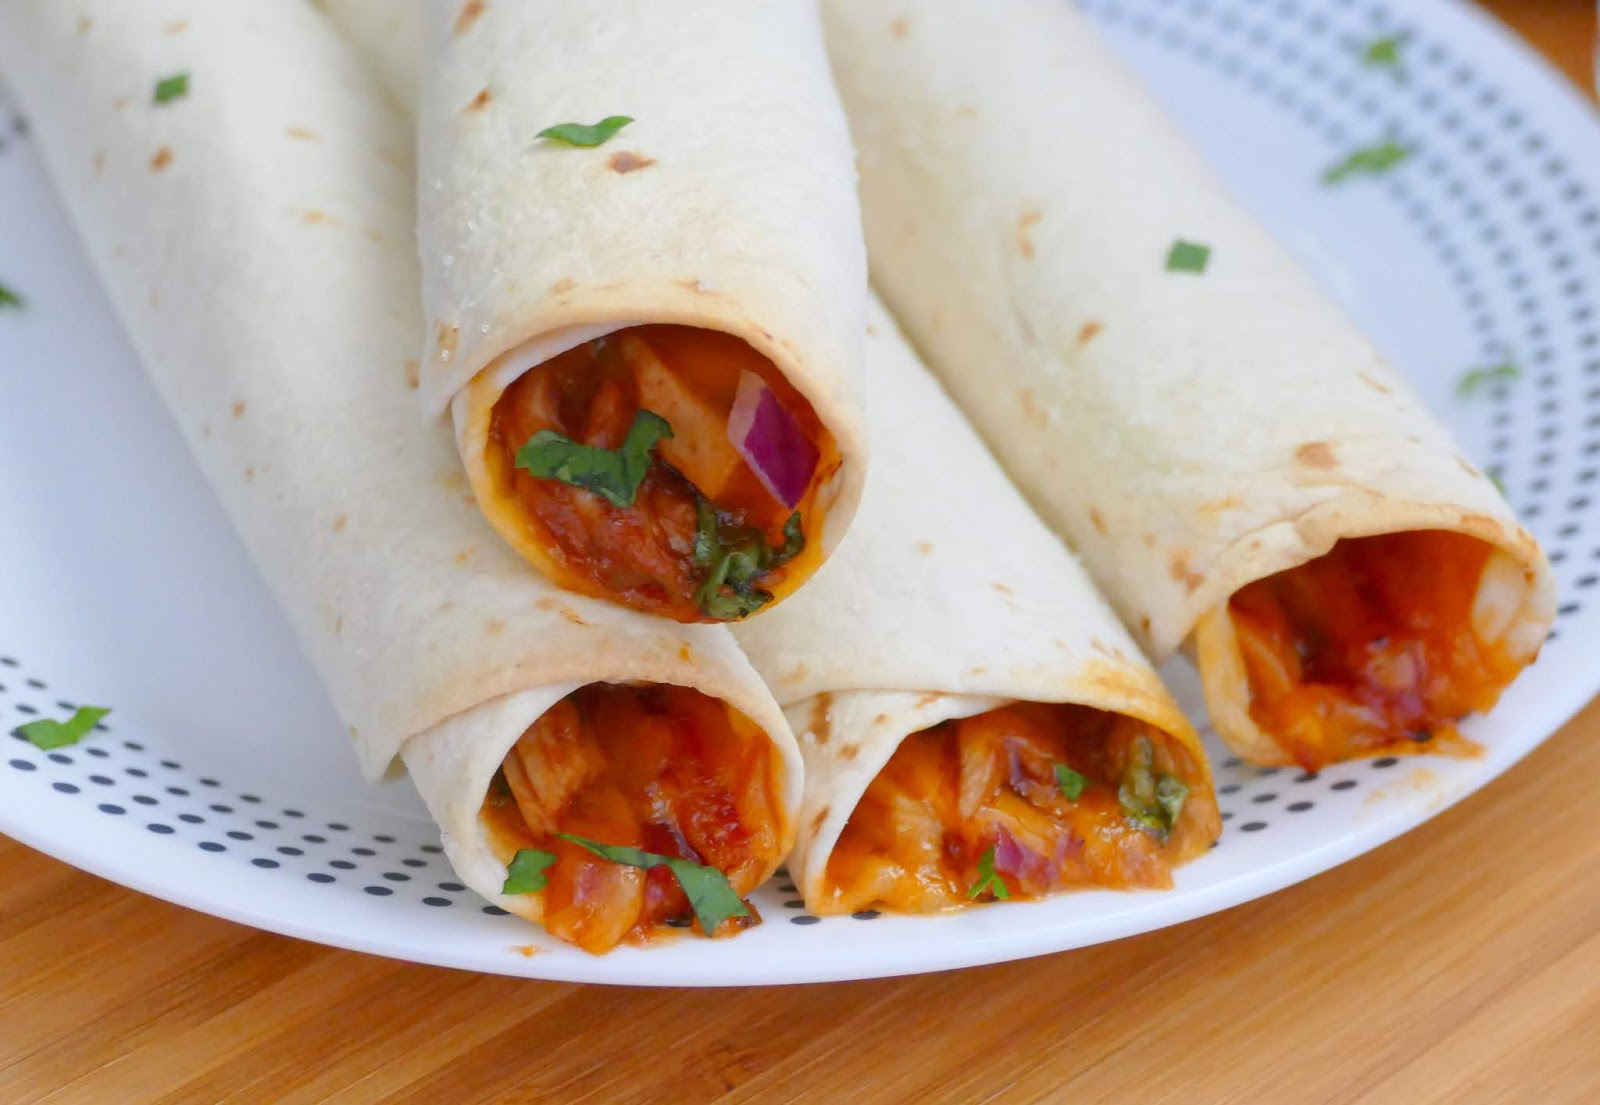 This easy baked taquito recipe is perfect as a game day appetizer, lunch or dinner! The combo of barbecue rotisserie chicken, sharp cheddar, red onion and cilantro make this a tasty treat! Give barbecue pork or beef a try instead of chicken!